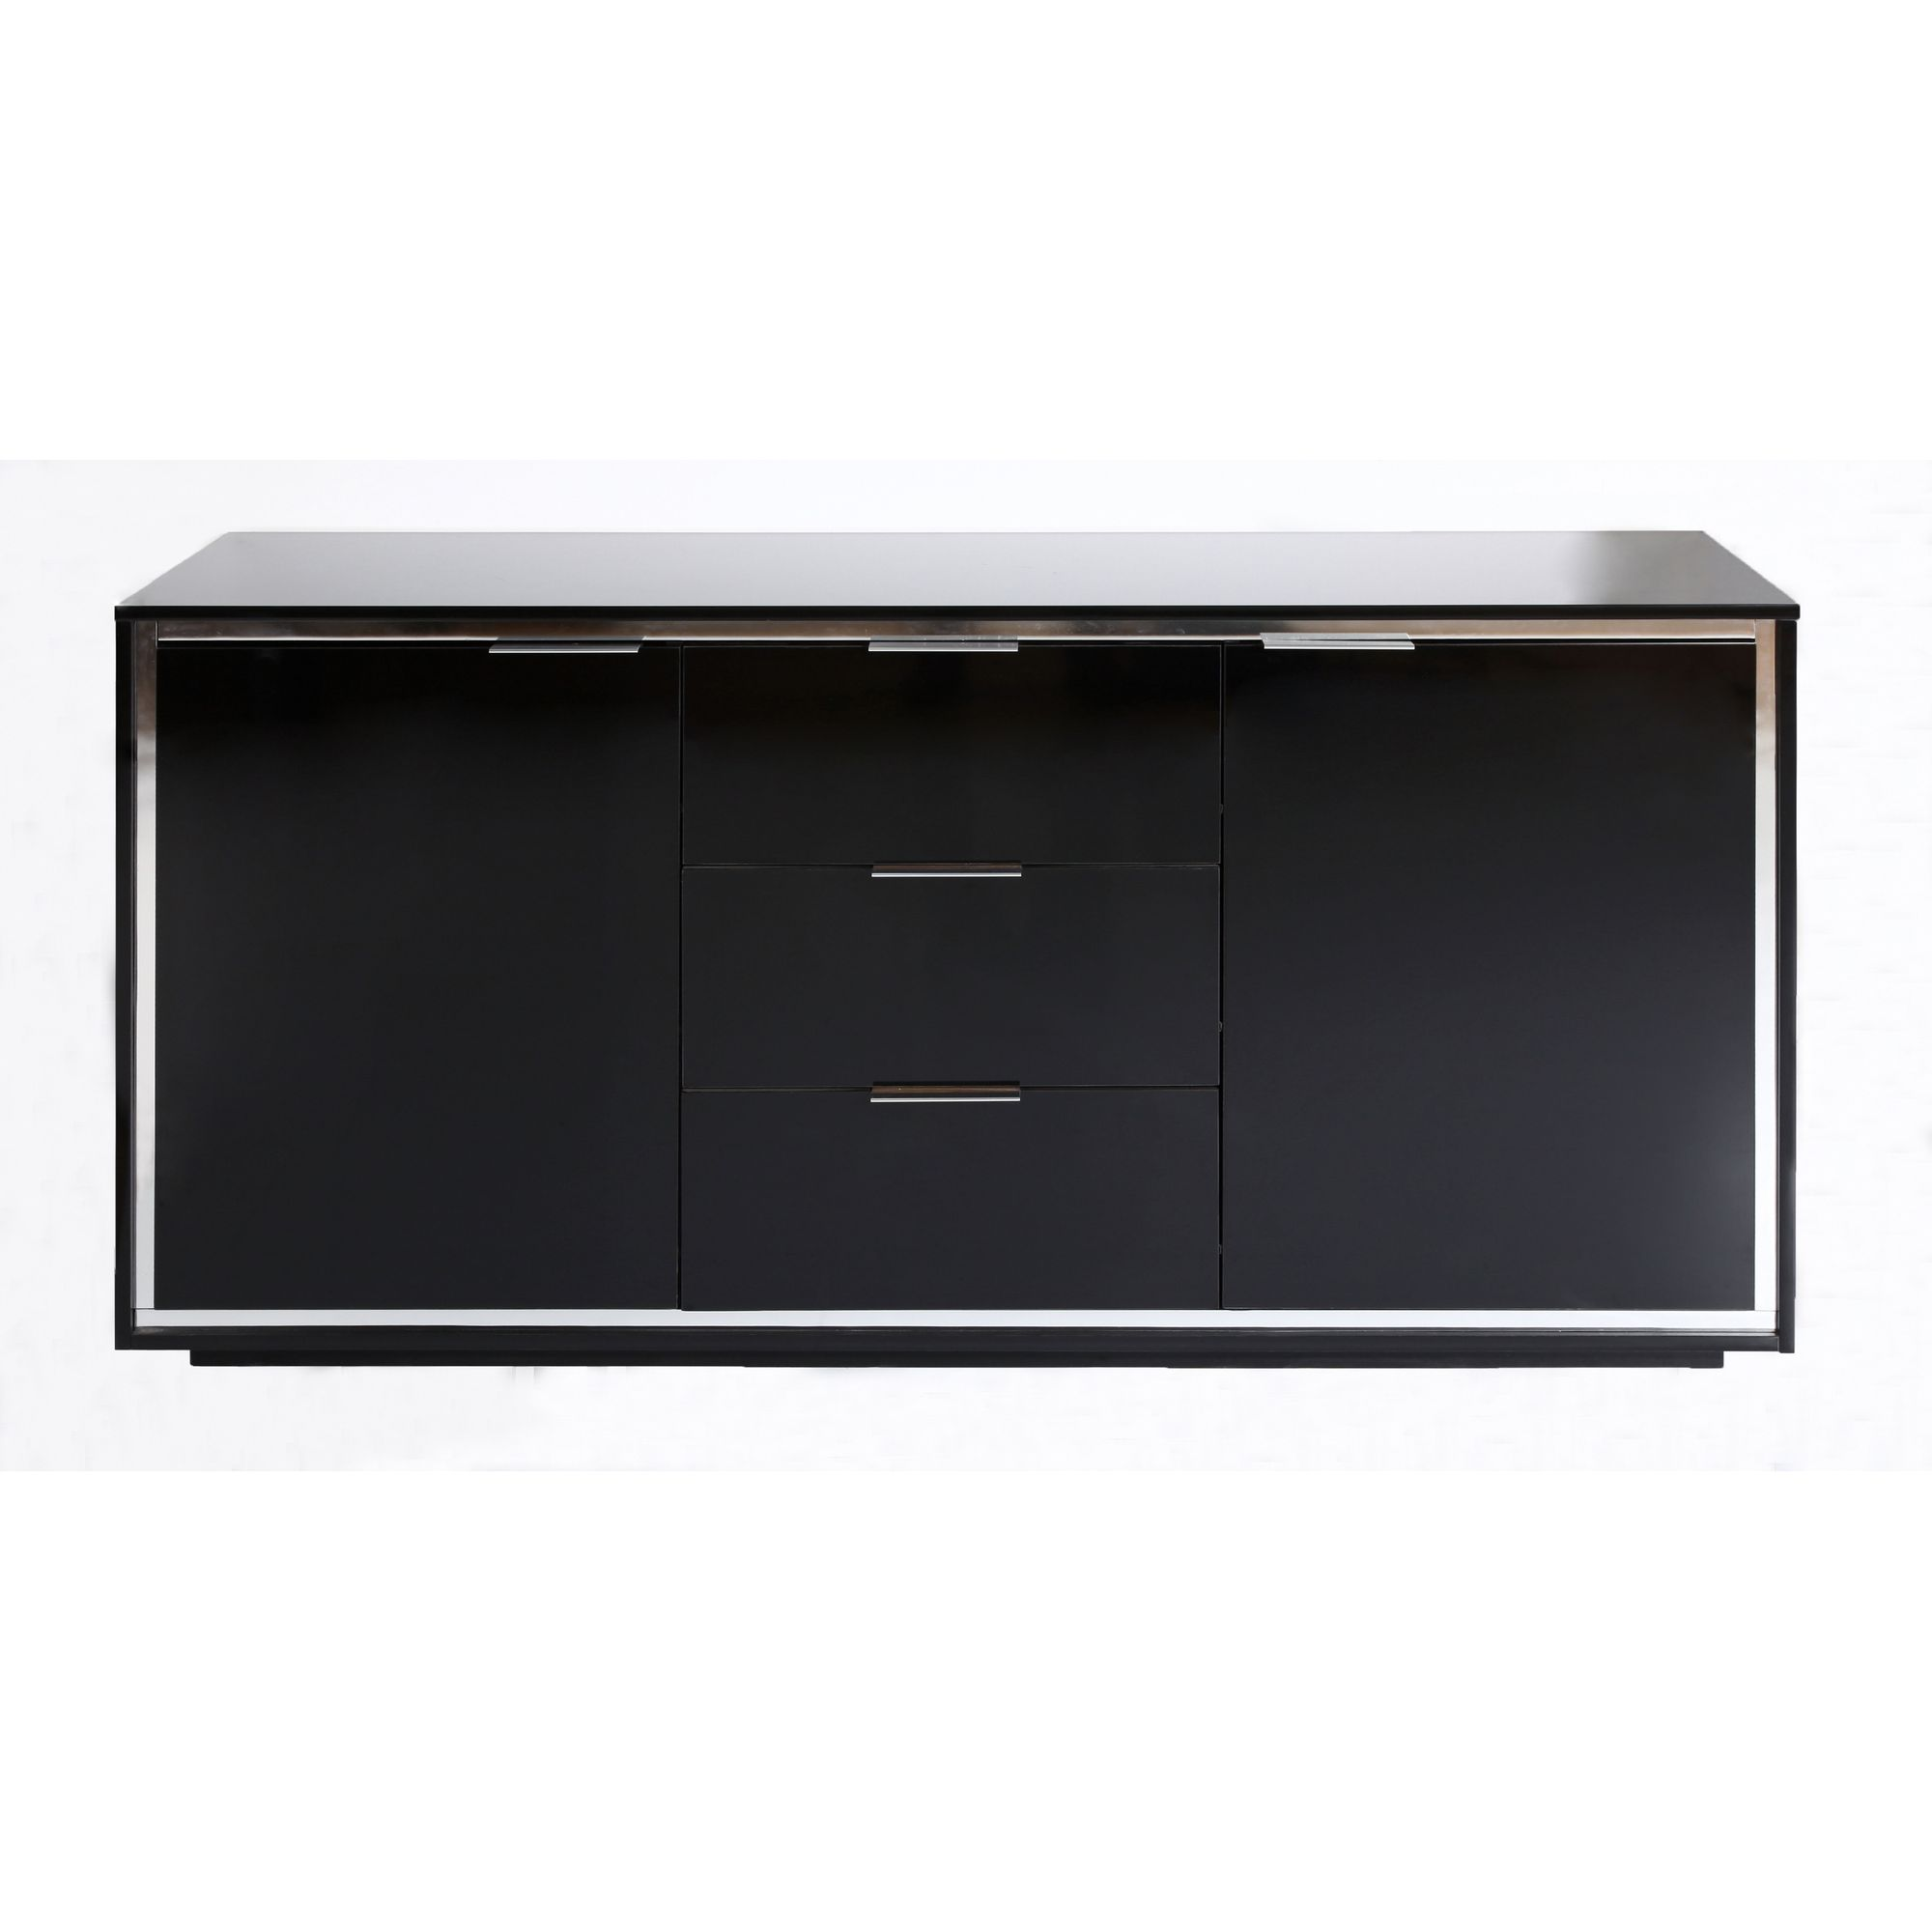 Parisot Bright Sideboard in Black at Tesco Direct